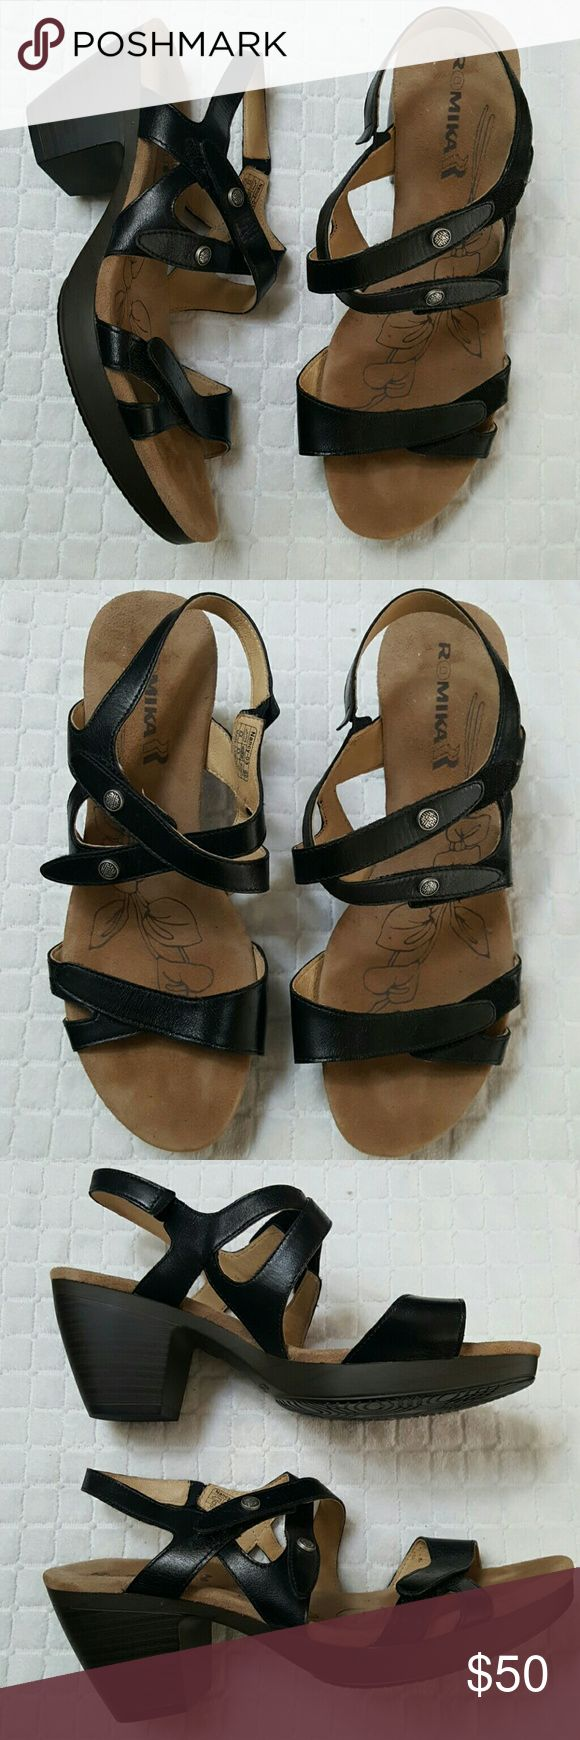 🆕Romika Comfortable Sandals sz 11 Brand new, never worn,  NWOT,  stylish and beyond comfy dress sandle. Can be worn worth casual attire or dress it up,  either way will look and feel Faboulous for all day wear & comfort. Easy on and off  velcro strap closures both on top and on bottom to adjust to your liking. Leather upper, lightly padded footbed. Sz 41  ( us 11 ) Romika  Shoes Sandals